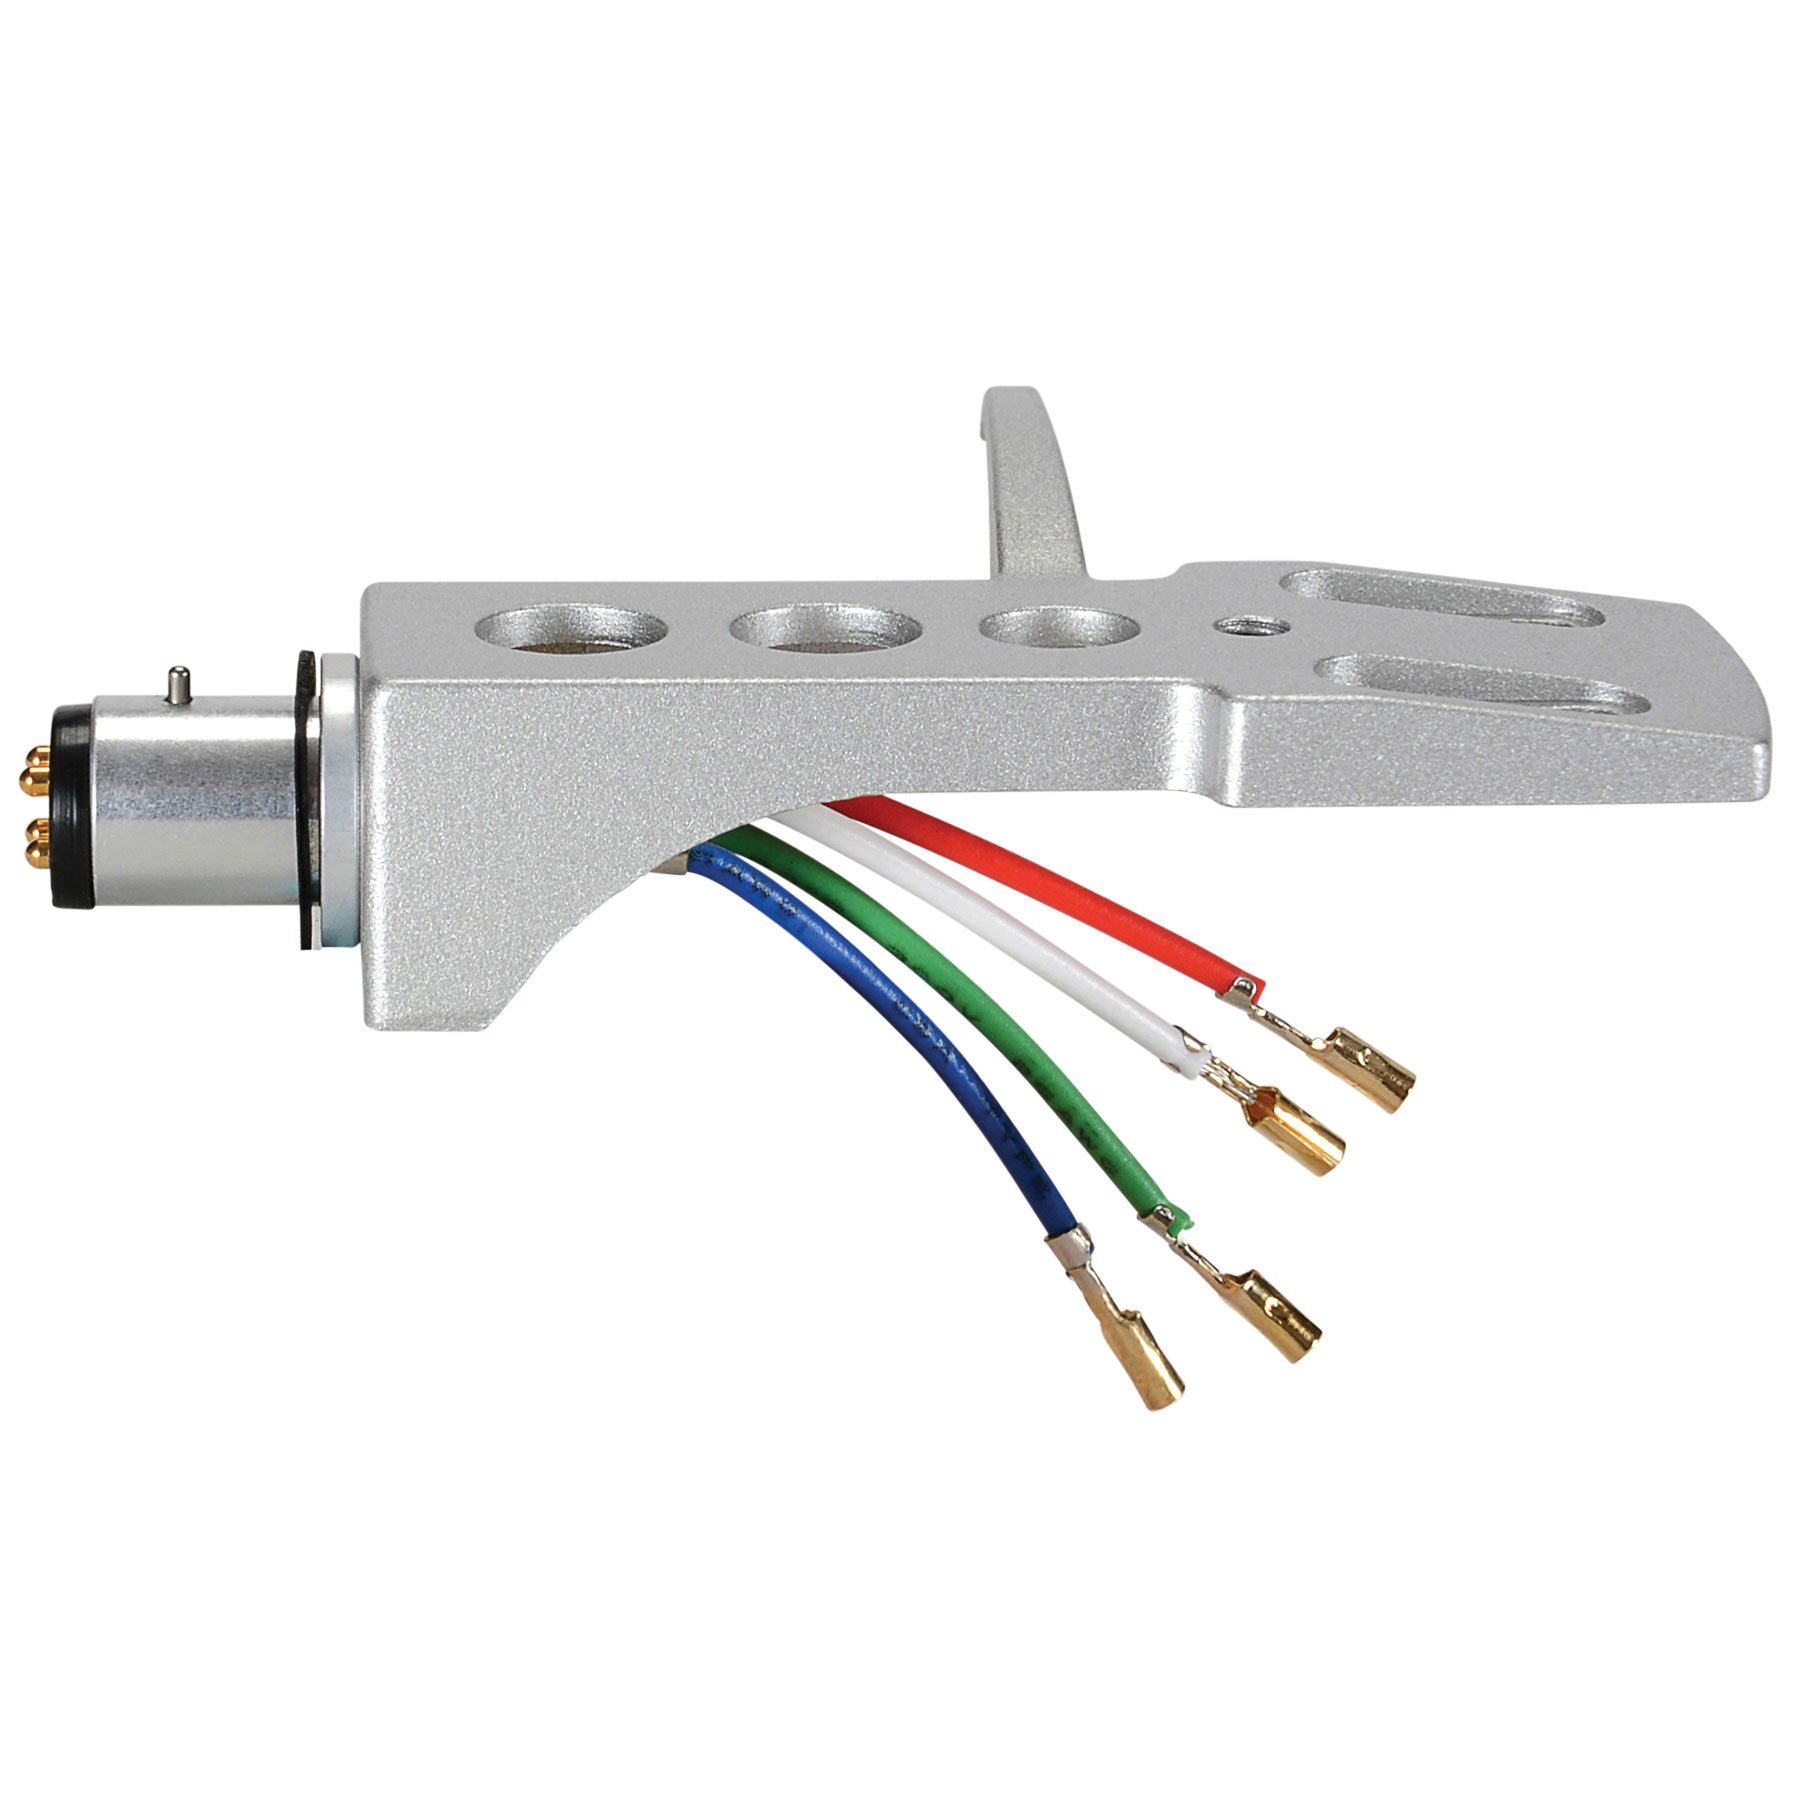 Parts Express A-T Style Phono Headshell with Lead Wires & Gold Plated Contacts